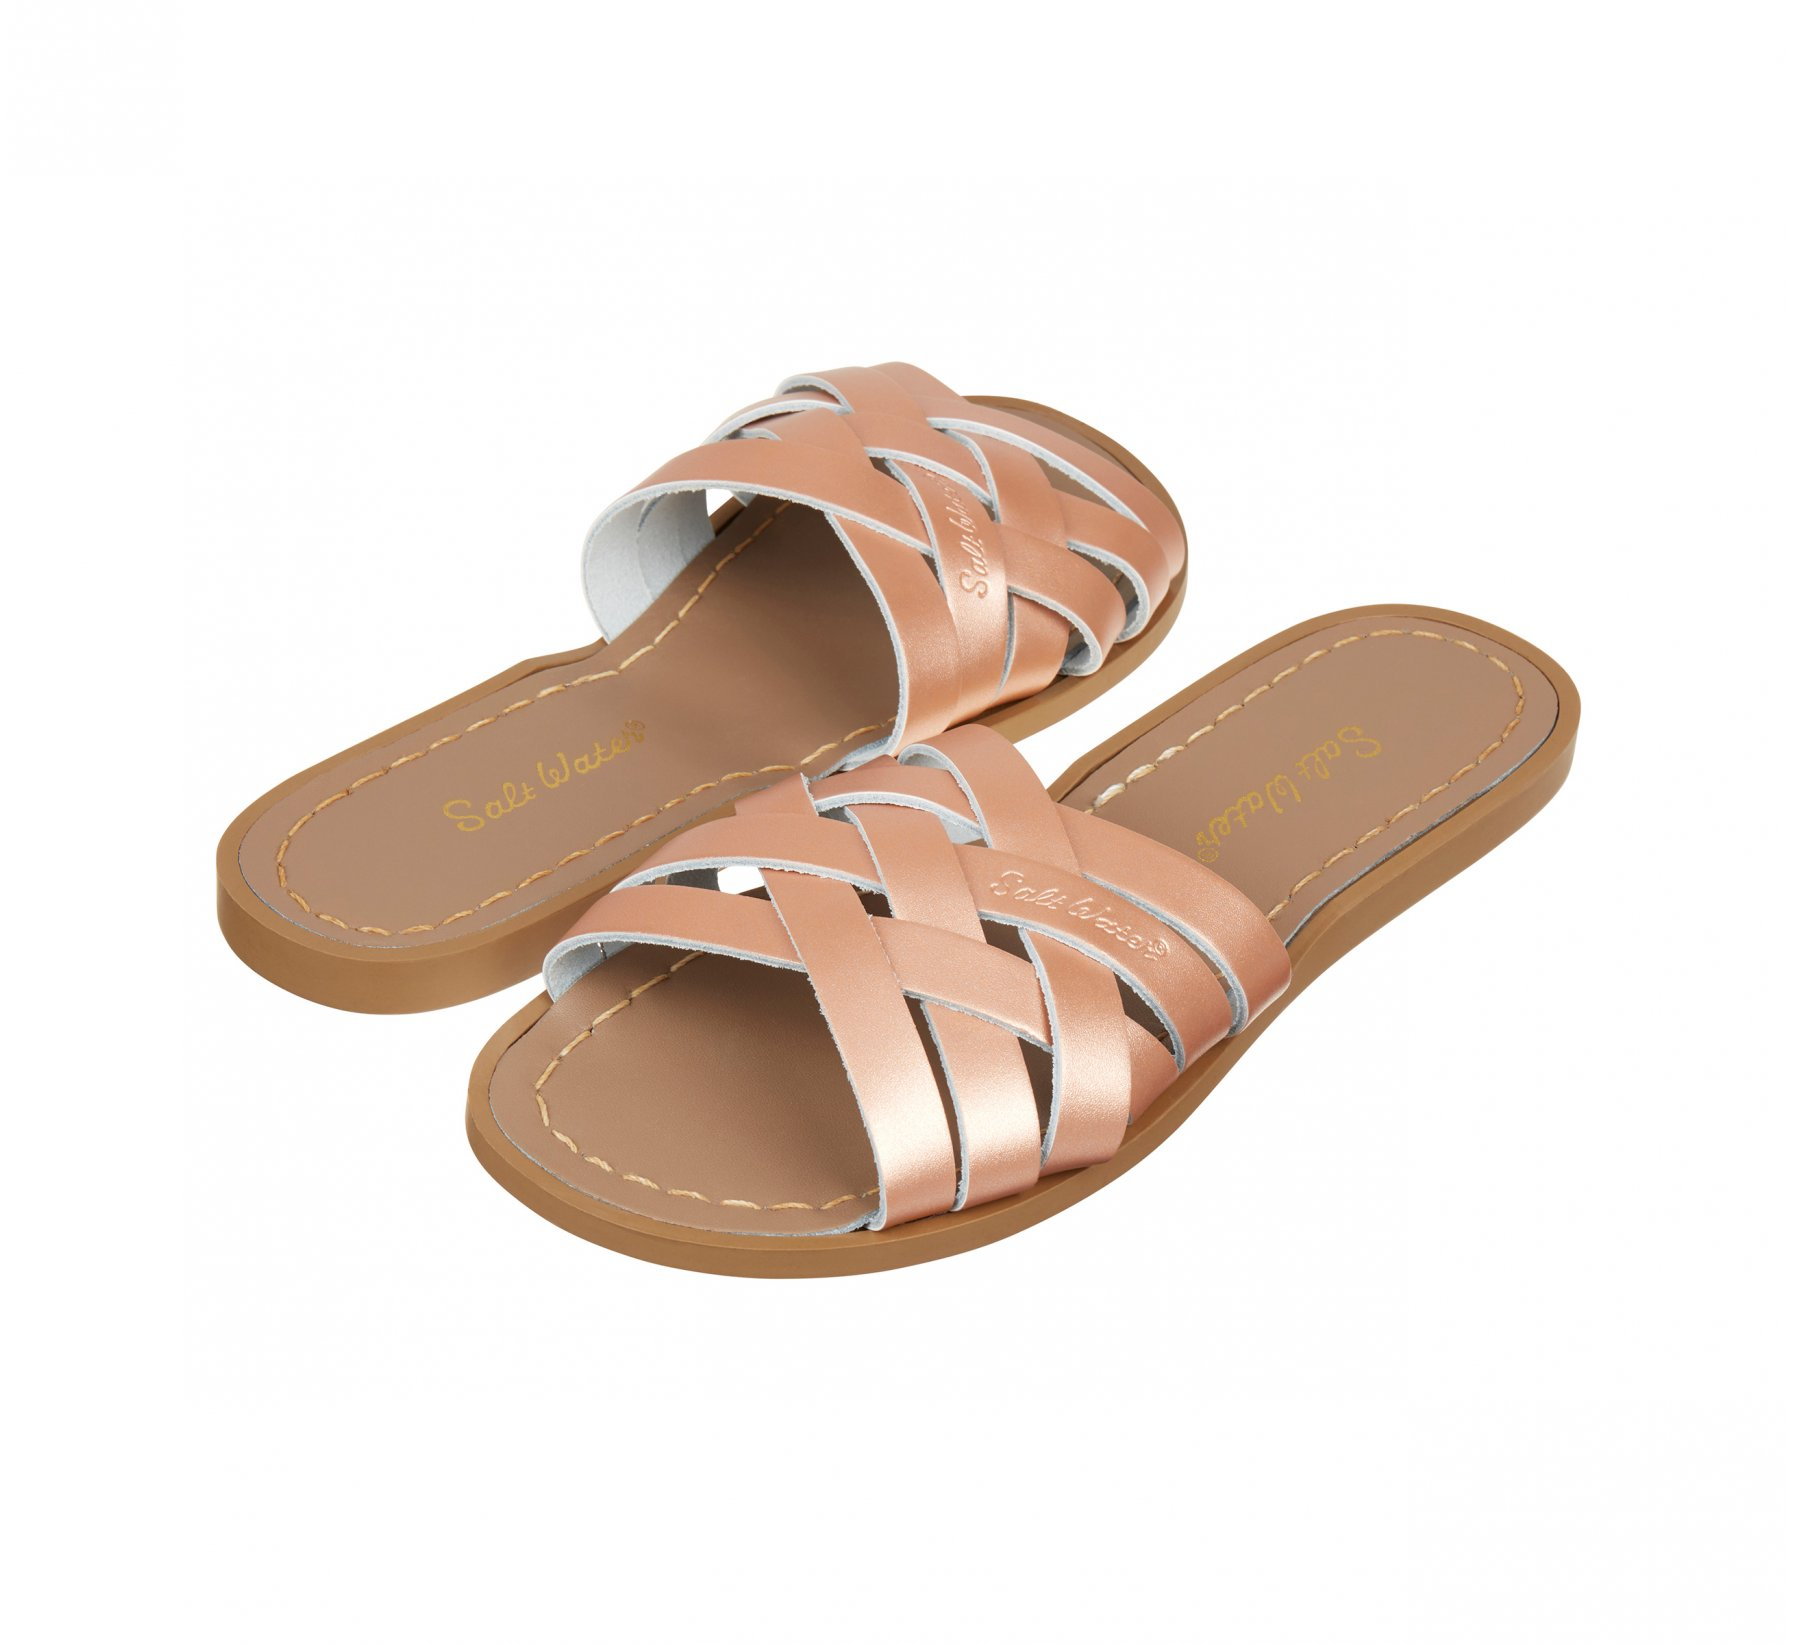 Retro Slide Rose Gold - Salt Water Sandals